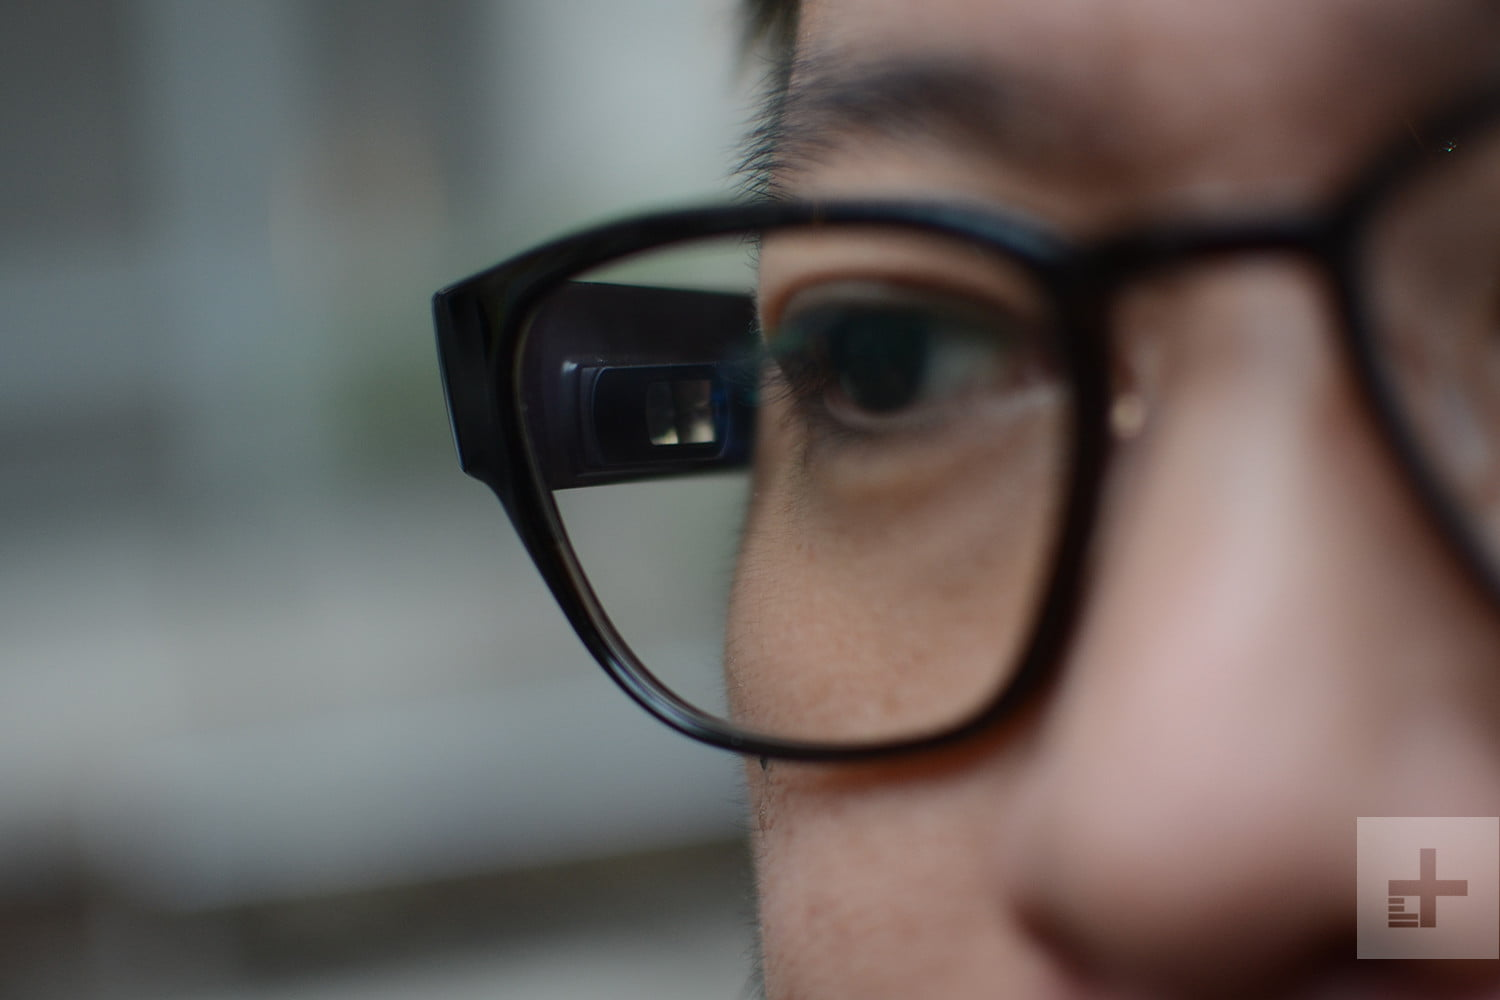 d81822f2bf7 North Focals Review  Smartglasses We Want To Wear